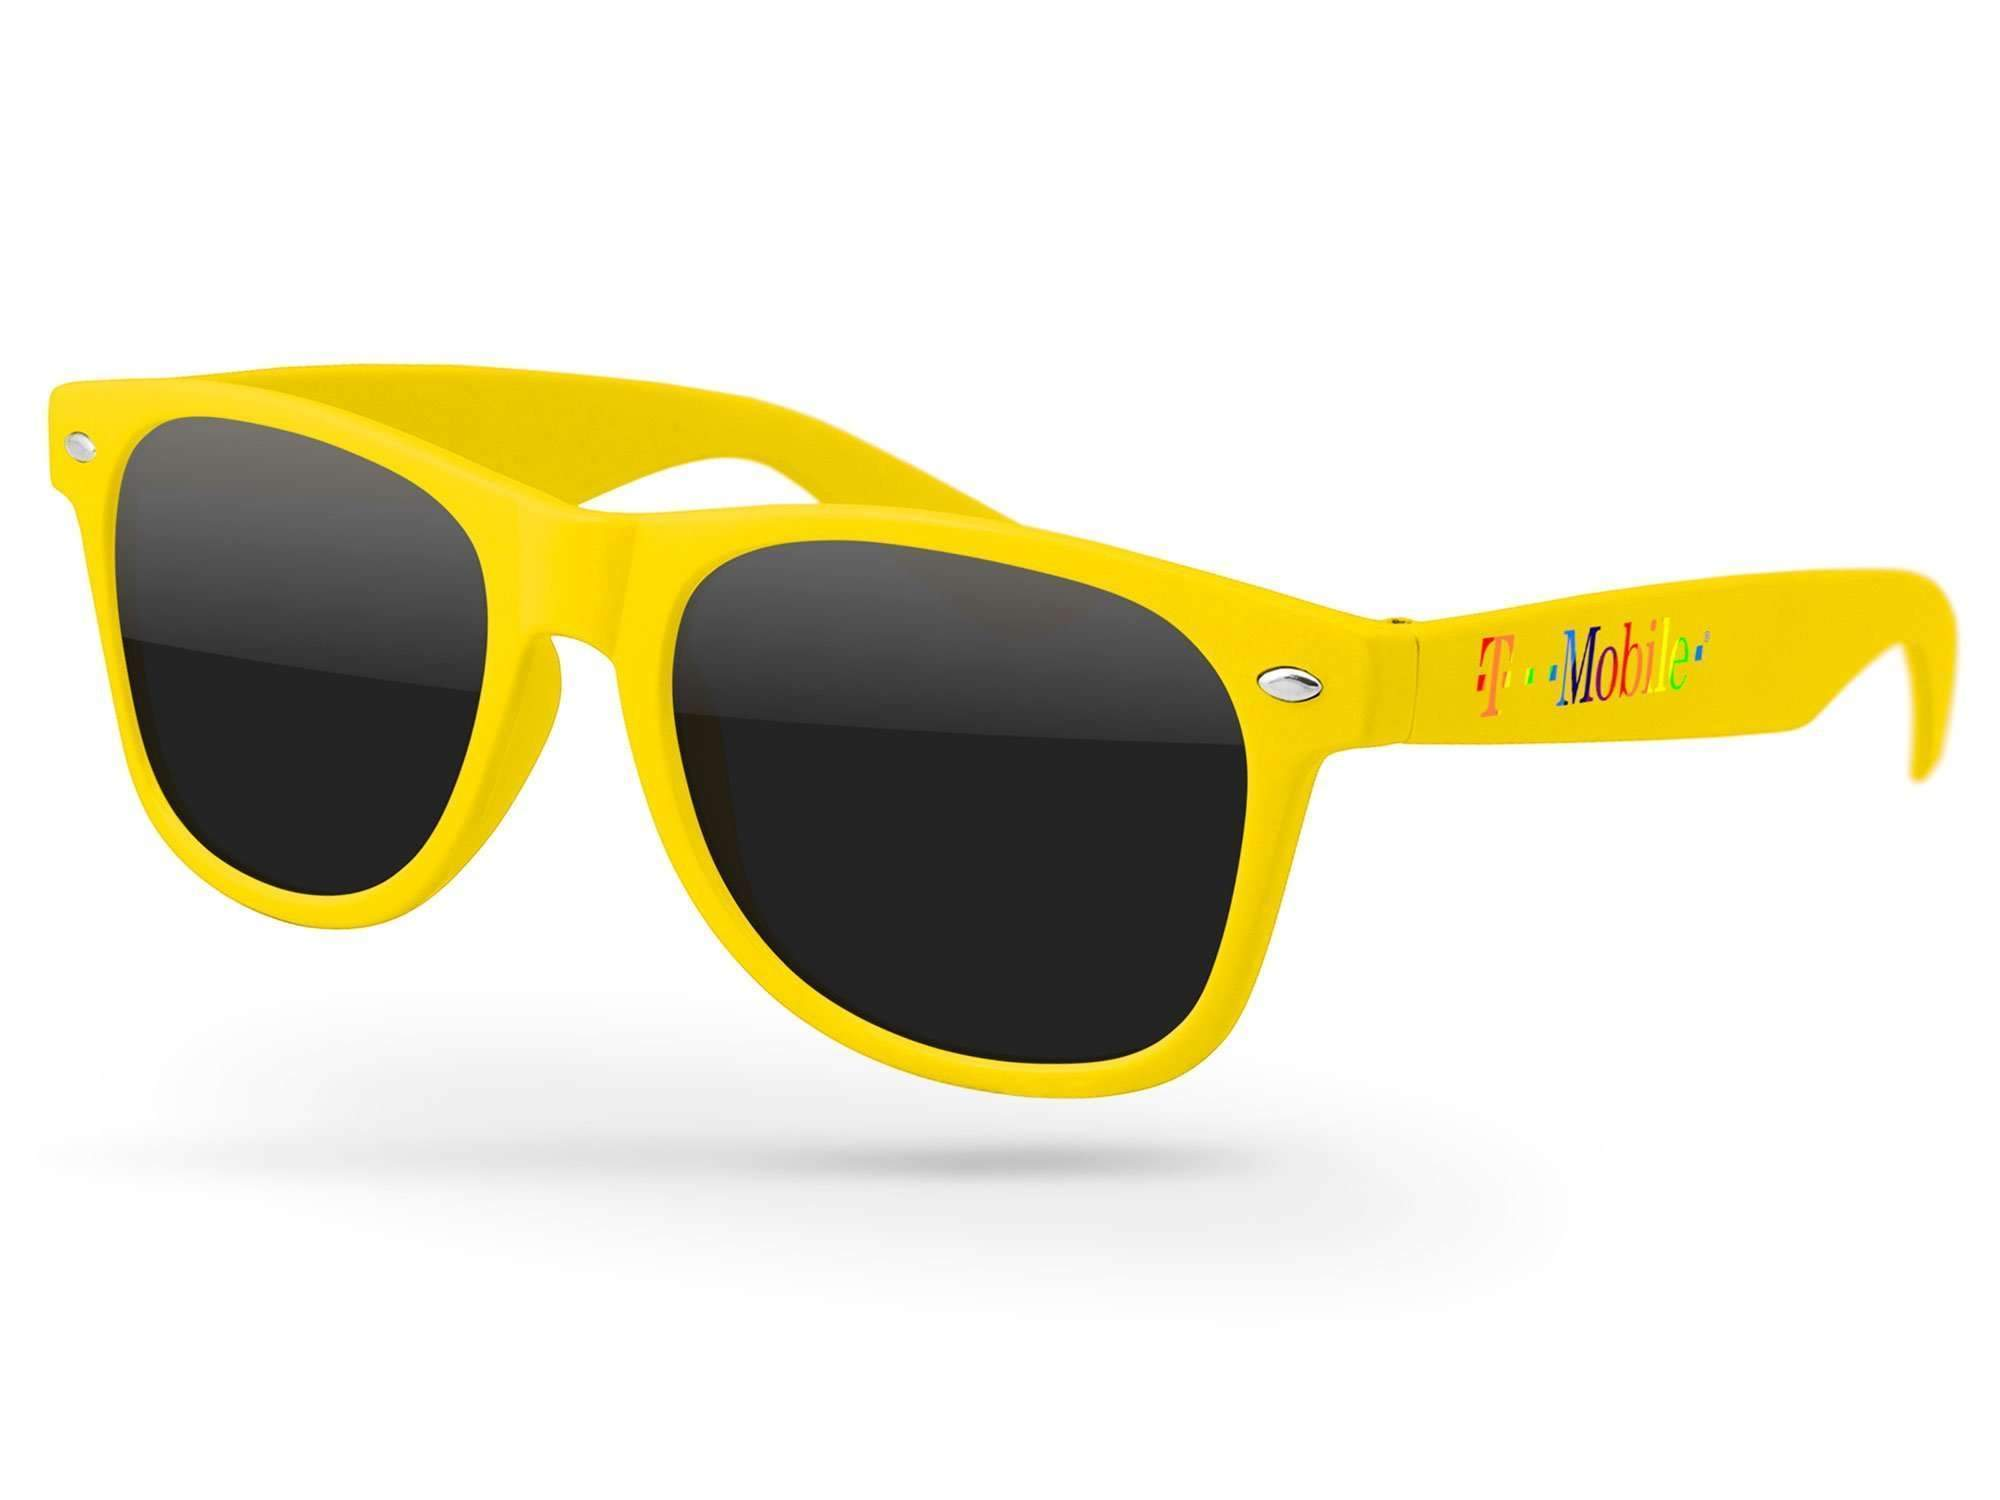 RD020 - Pride Retro Promotional Sunglasses w/ full-color temple imprint